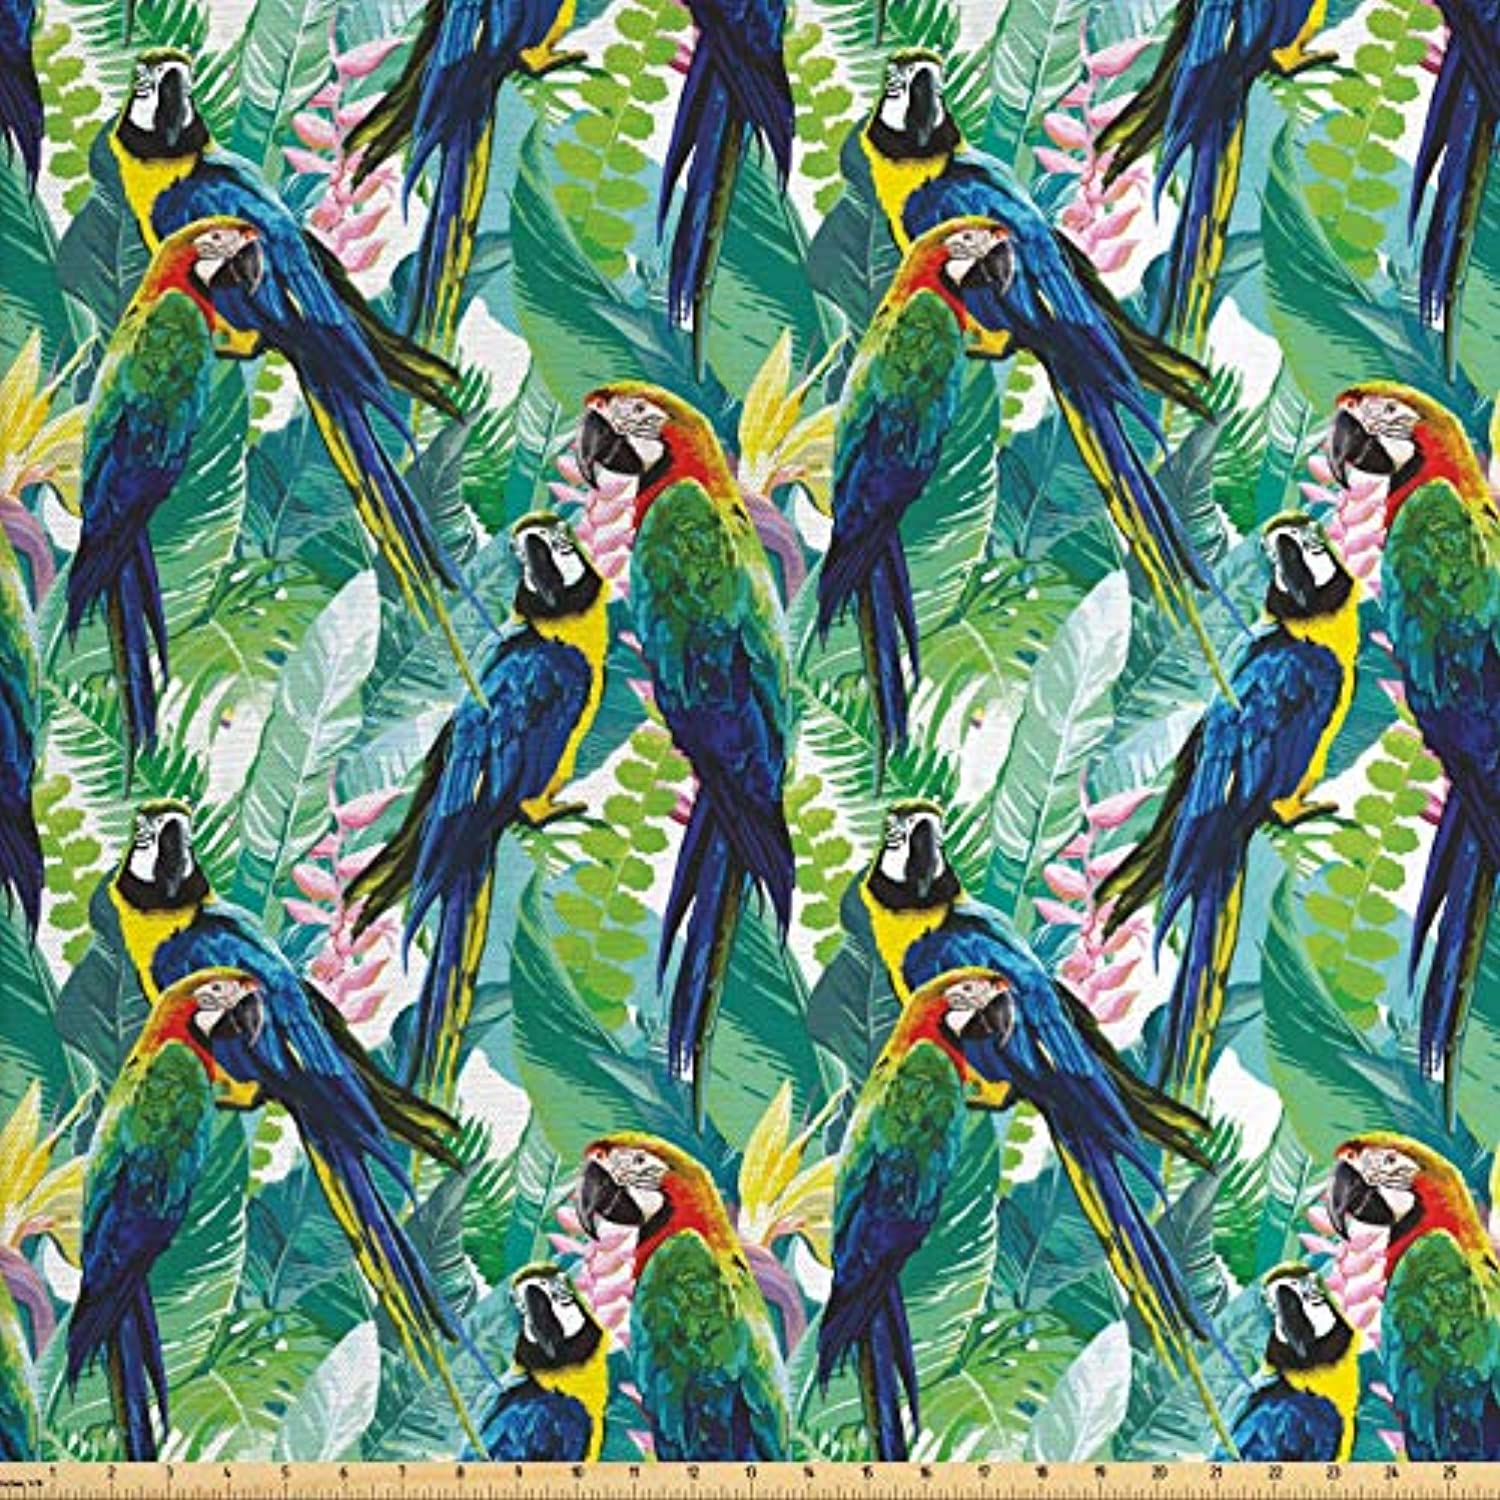 Lunarable Parrots Fabric by The Yard, Colorful Parrots Tropic Flowers Warm Weather Gardens Vacation Traveling, Decorative Fabric for Upholstery and Home Accents, 2 Yards, Navy Blue Green Yellow